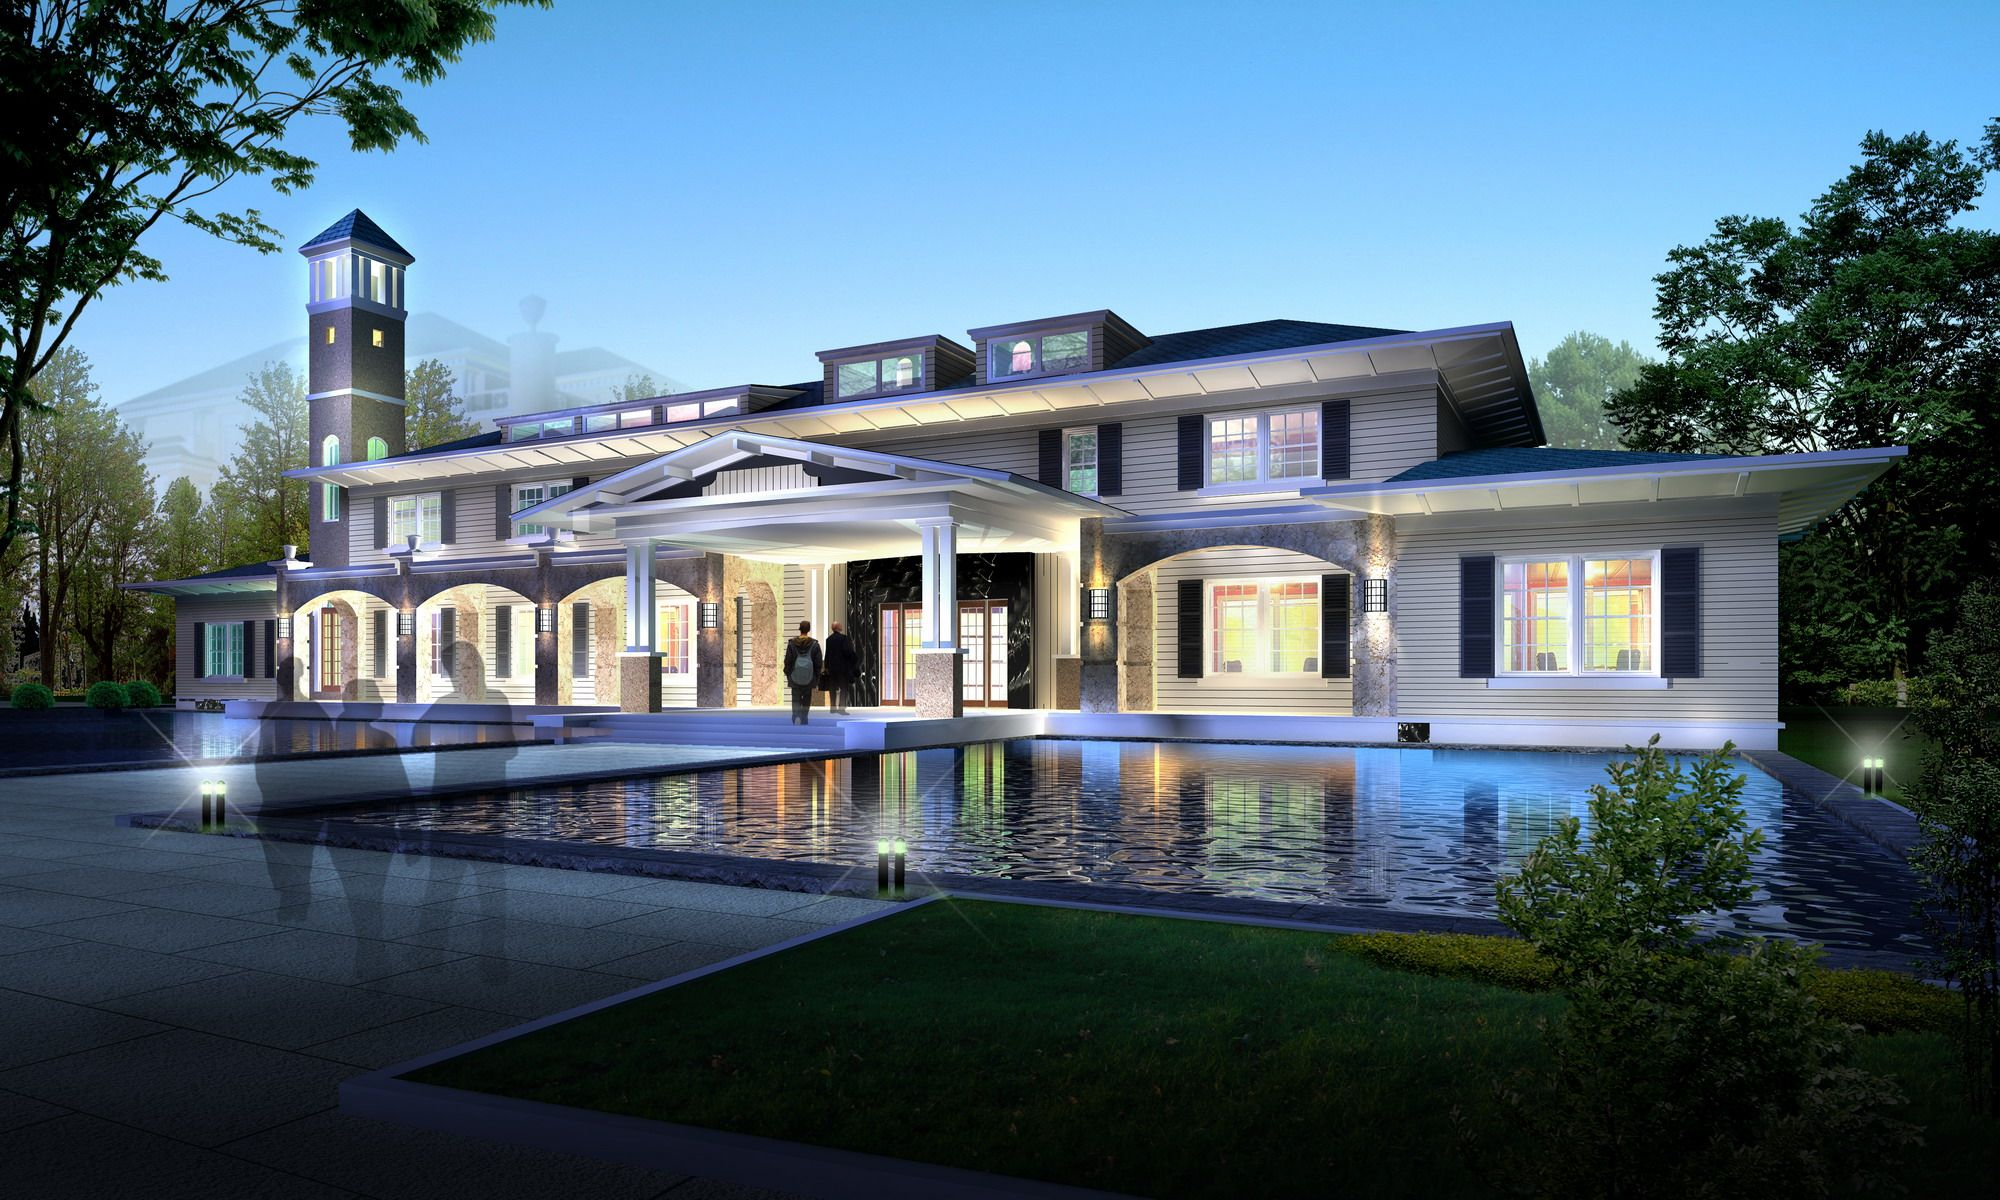 Building 308 3D Model High detail building model with